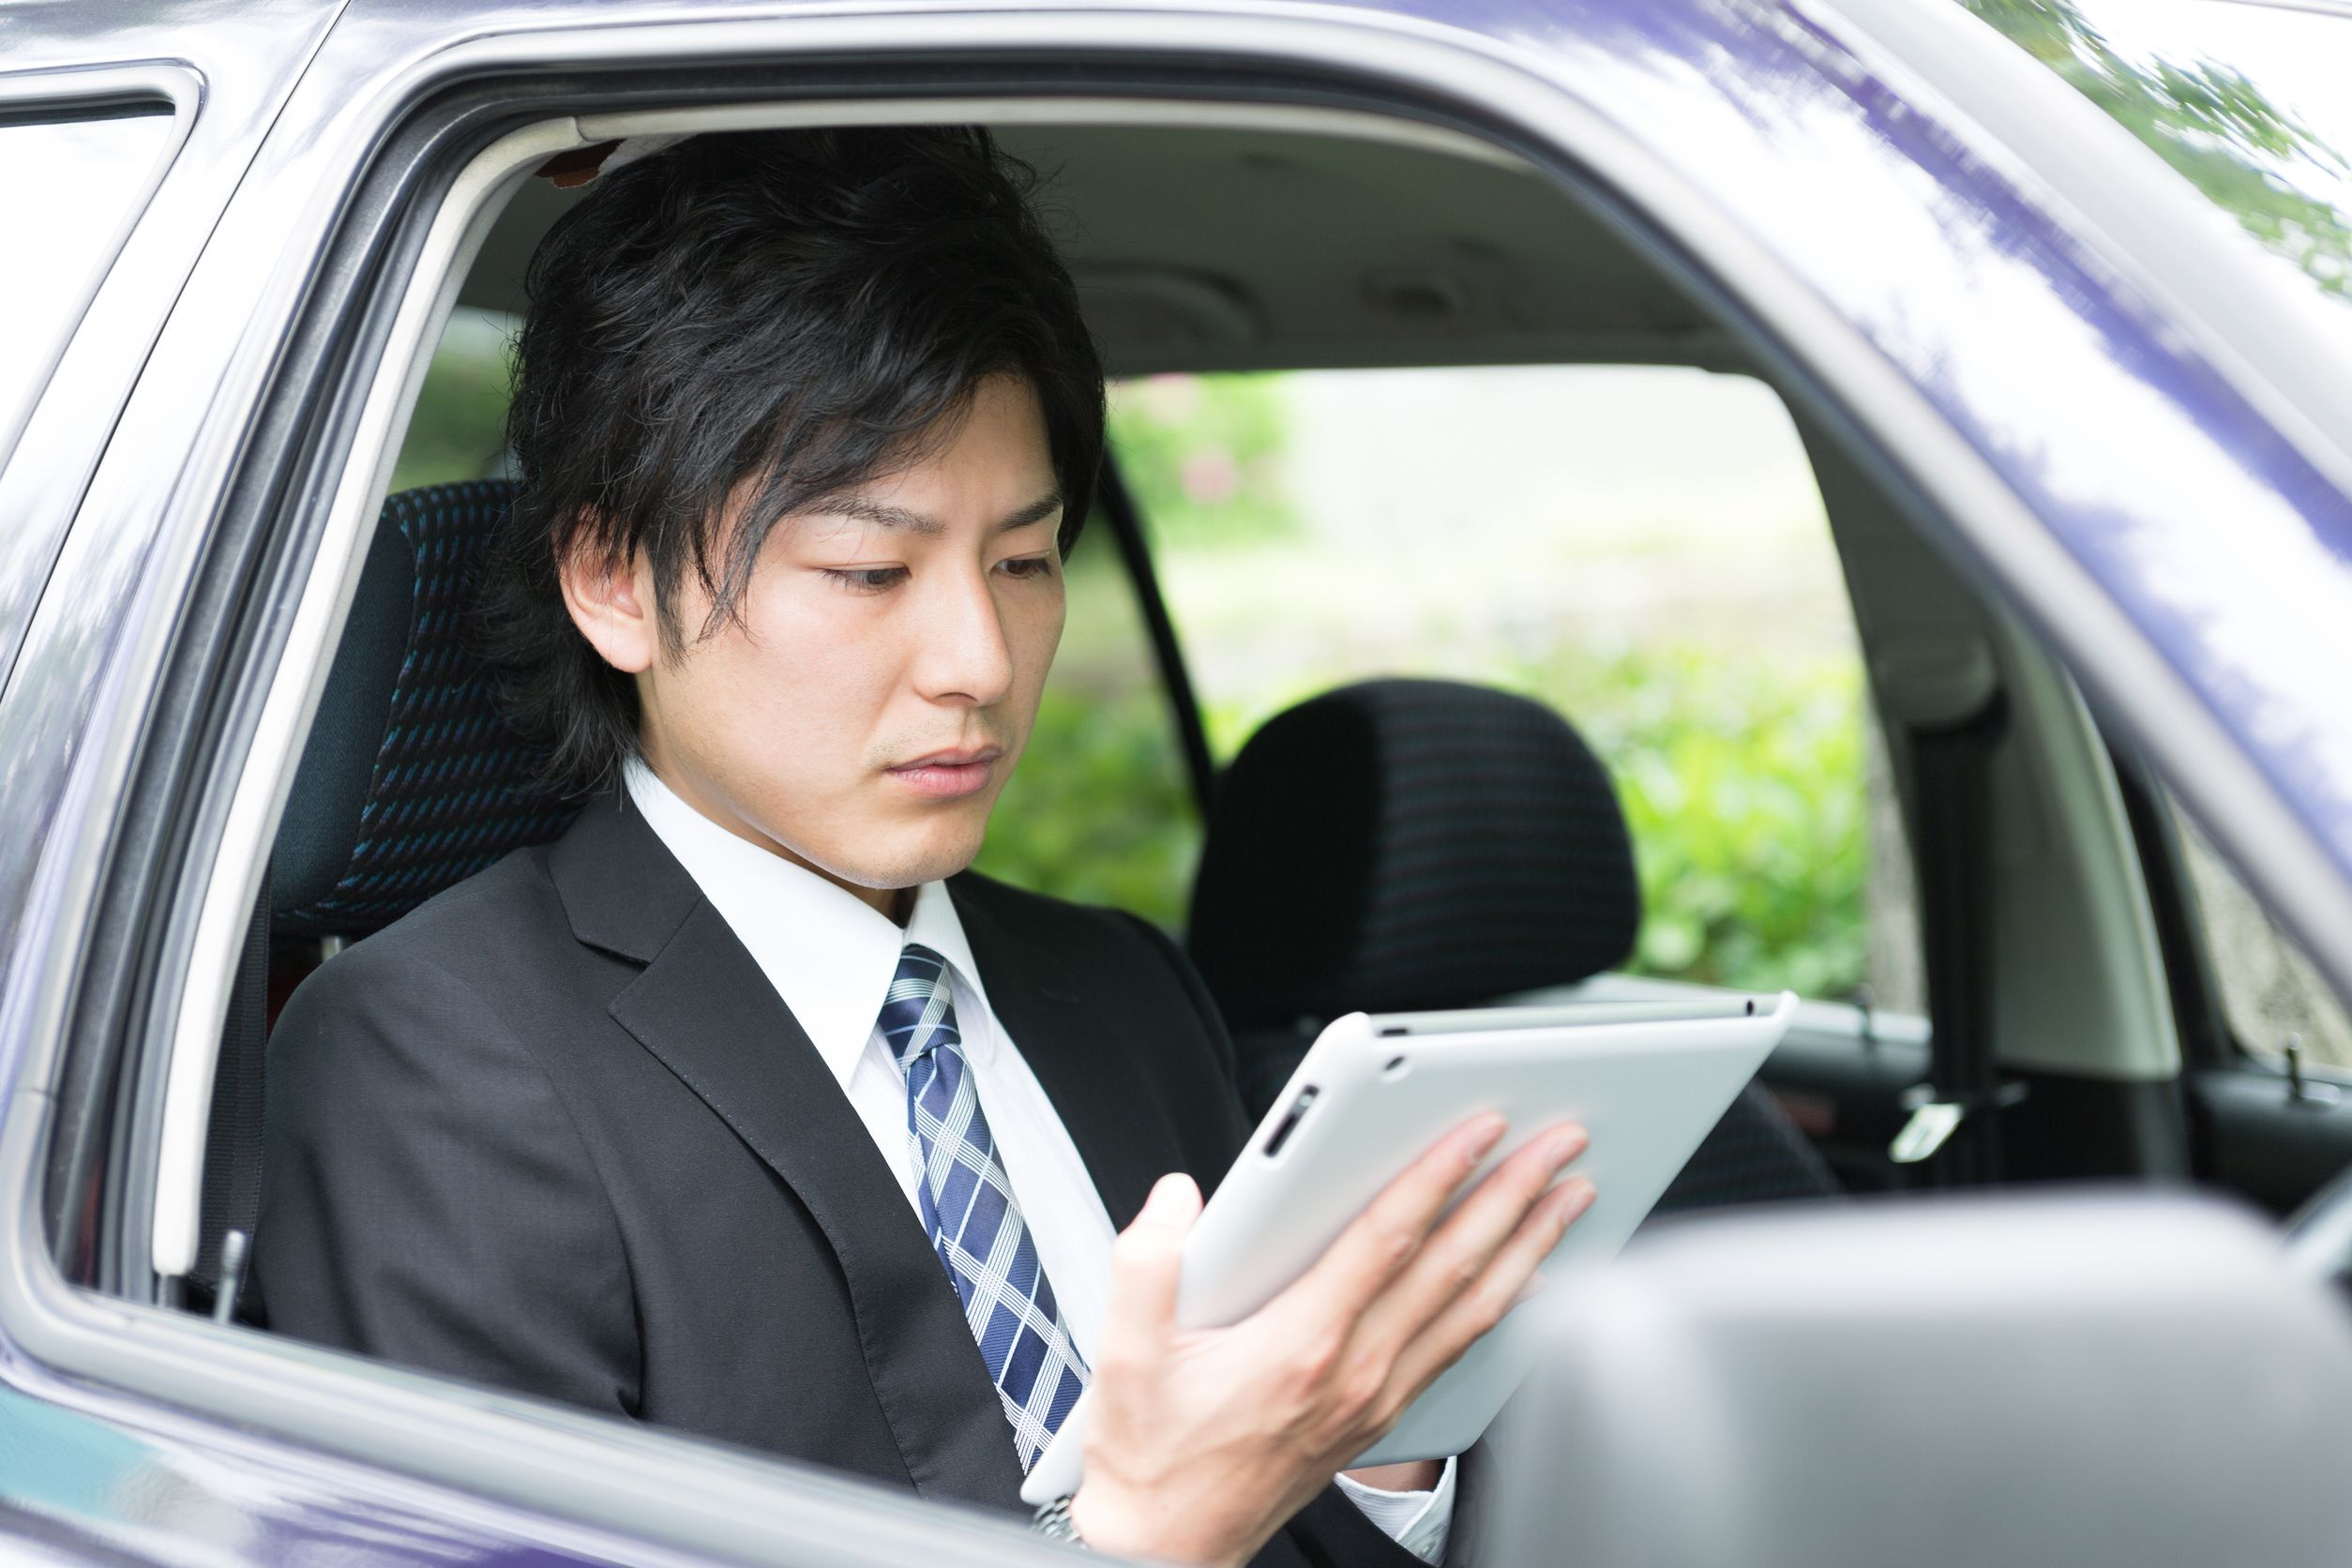 20588068 - young businessman in a car